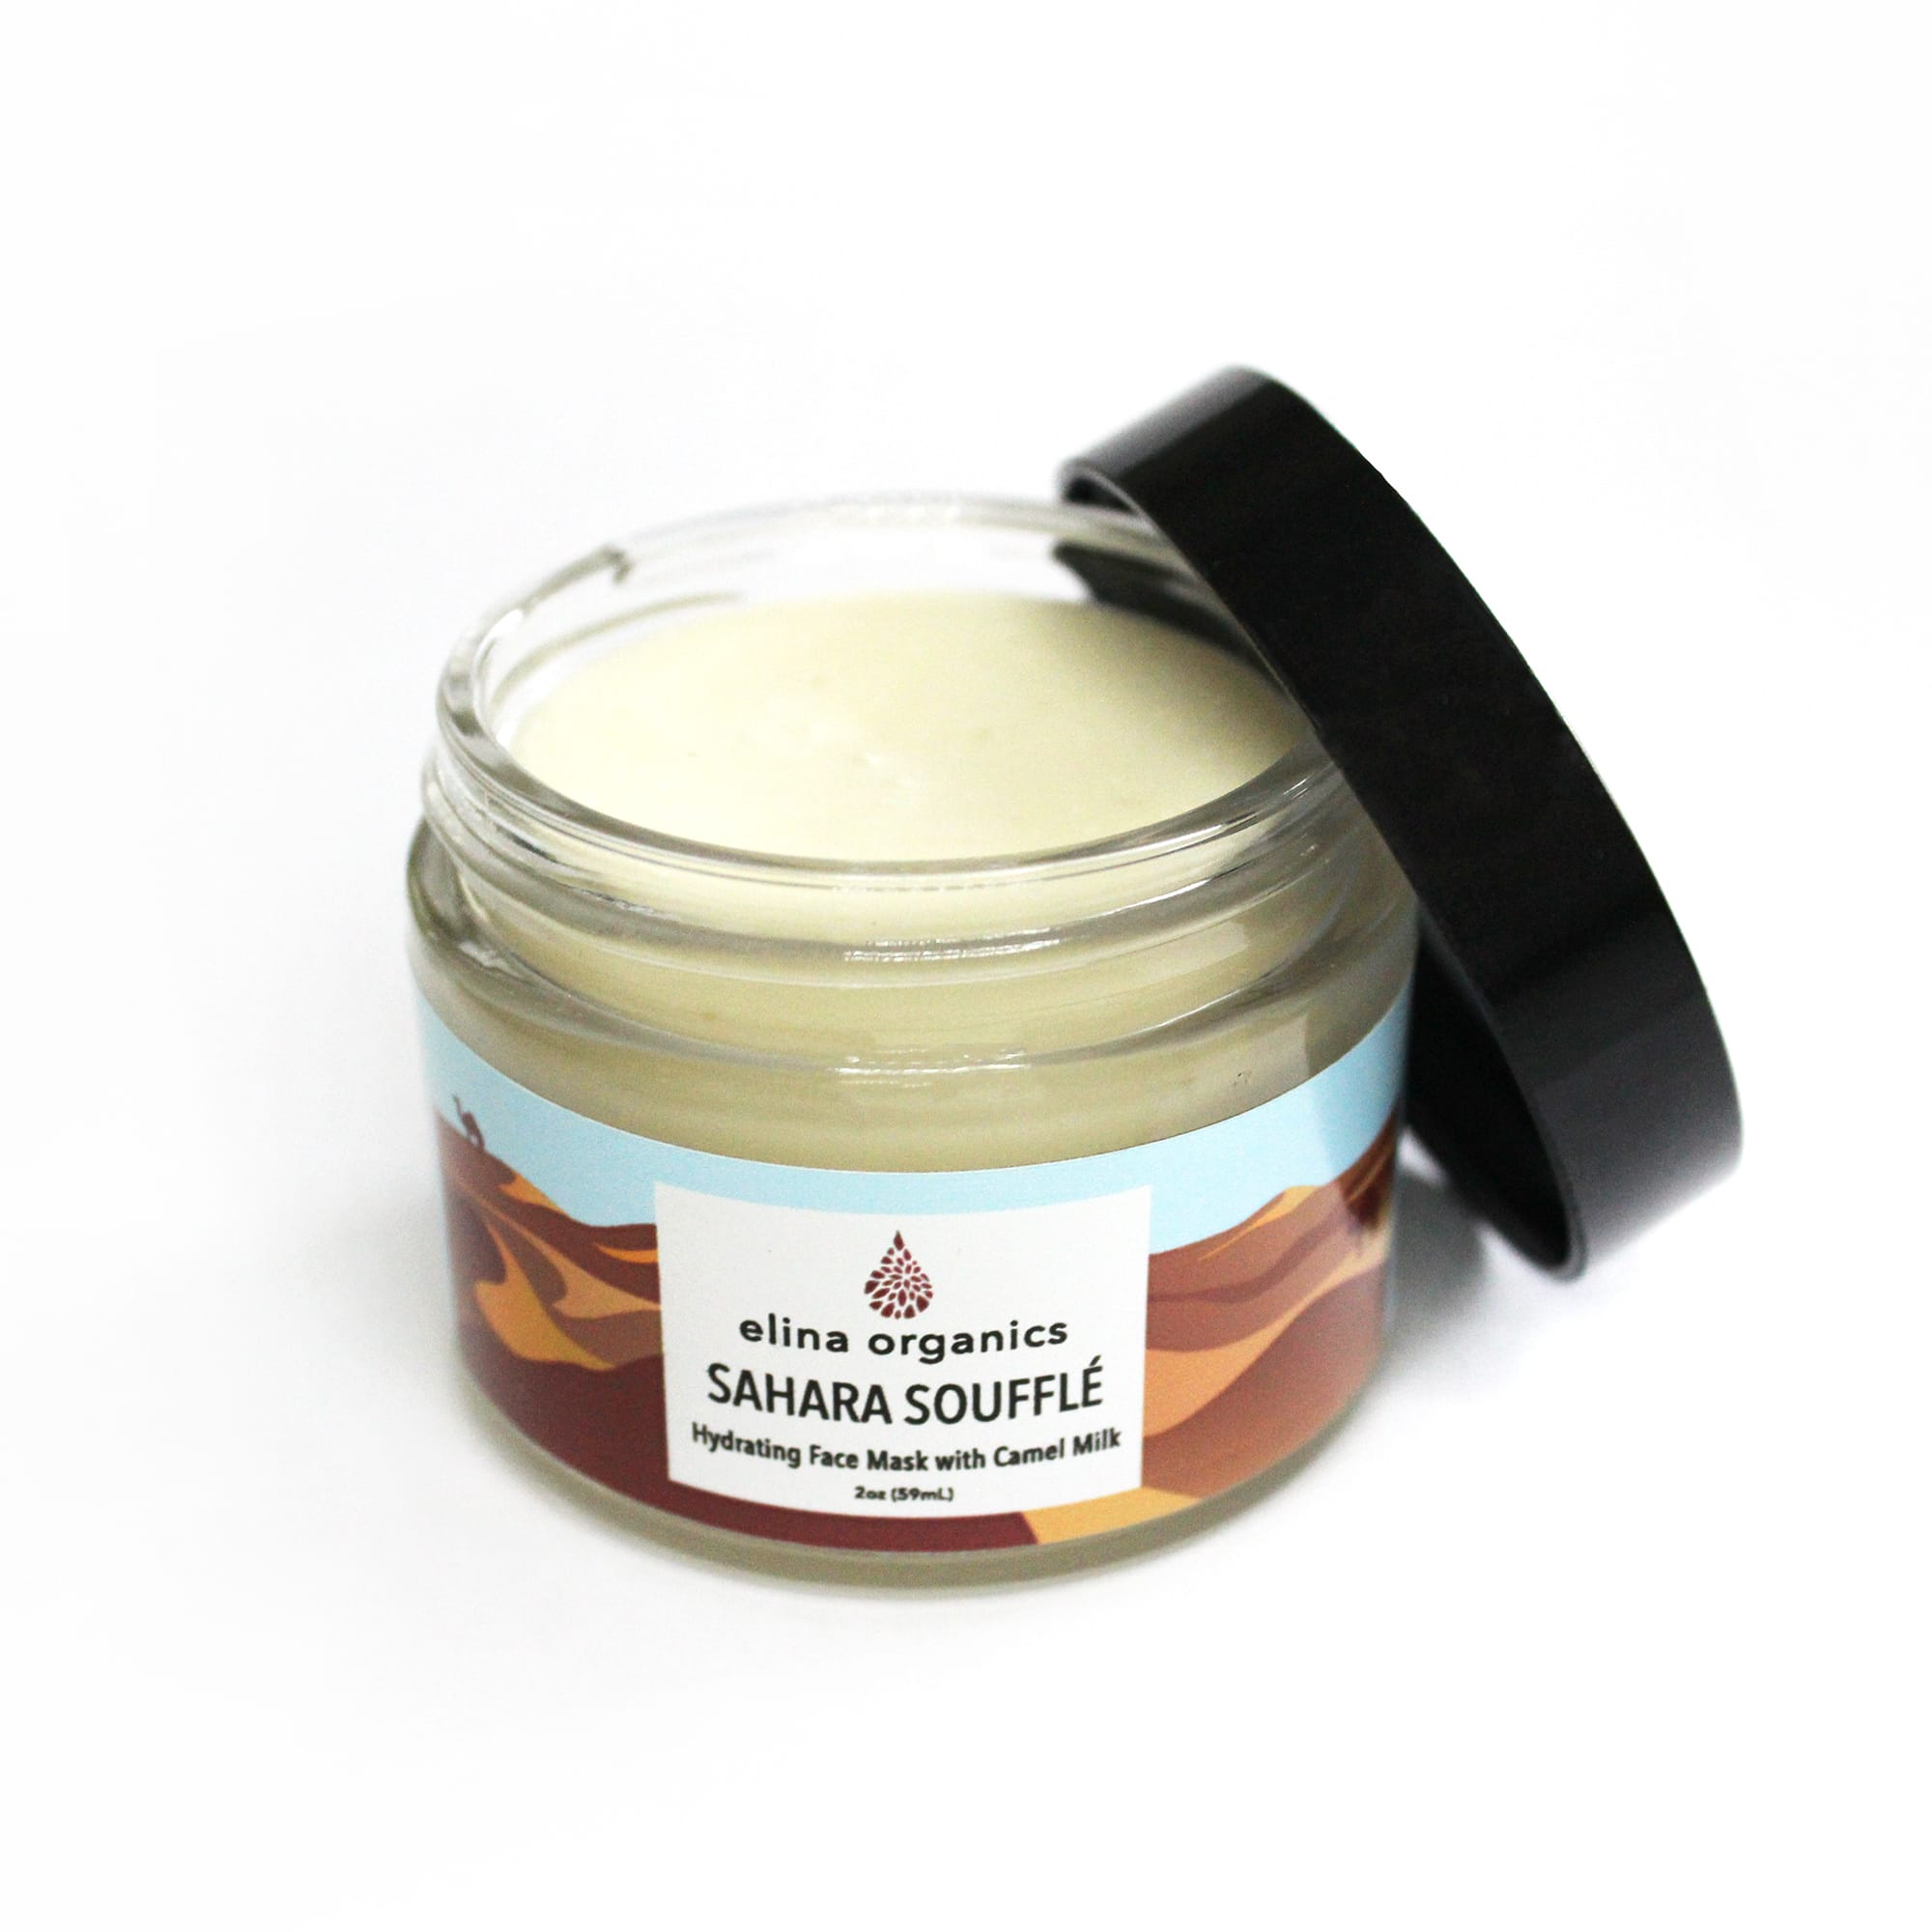 Elina Organics Sahara Souffle Face Mask with Camel Milk. The skincare fanatic will love this exotic, 100% organic beauty find. Made with Camel Milk, this deeply hydrating face mask contains a powerful balanced blend of skin-repairing nutrients like natural alpha-hydroxy acids, proteins, and vitamins.